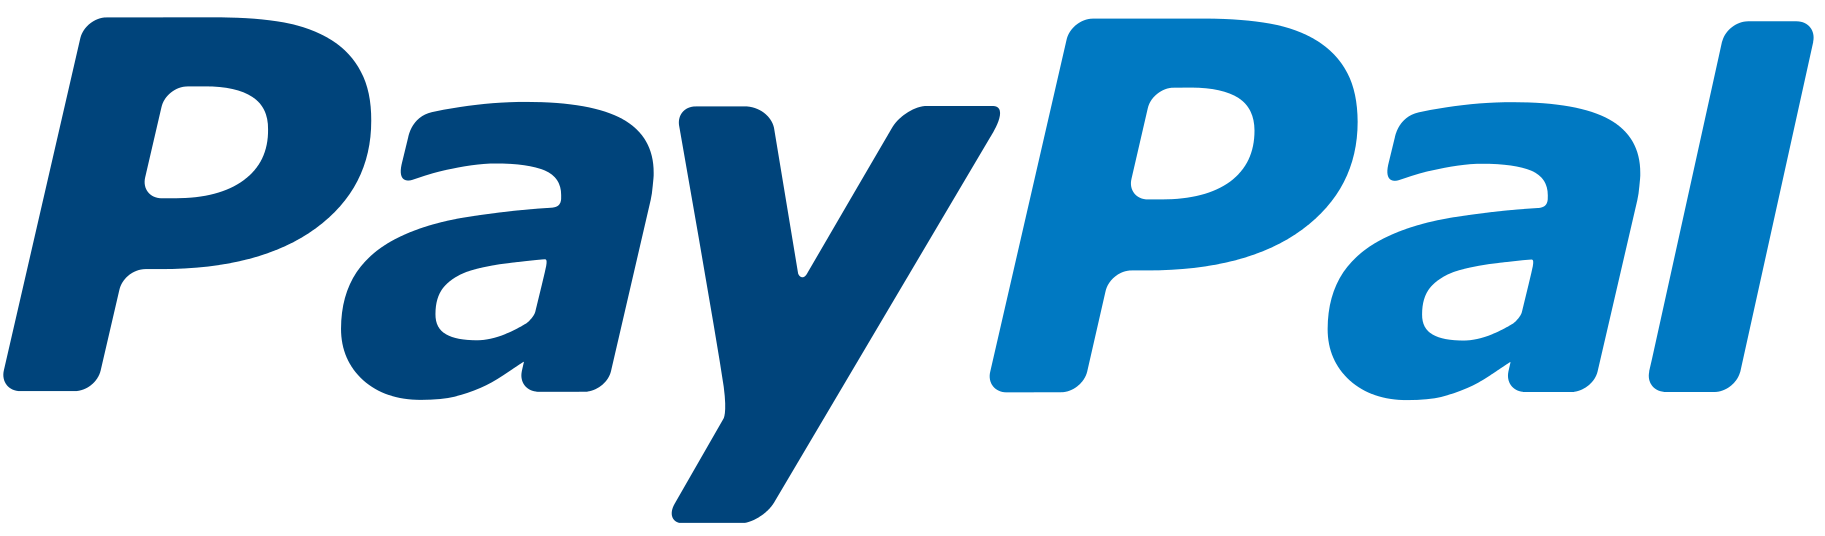 paypal_PNG1.png